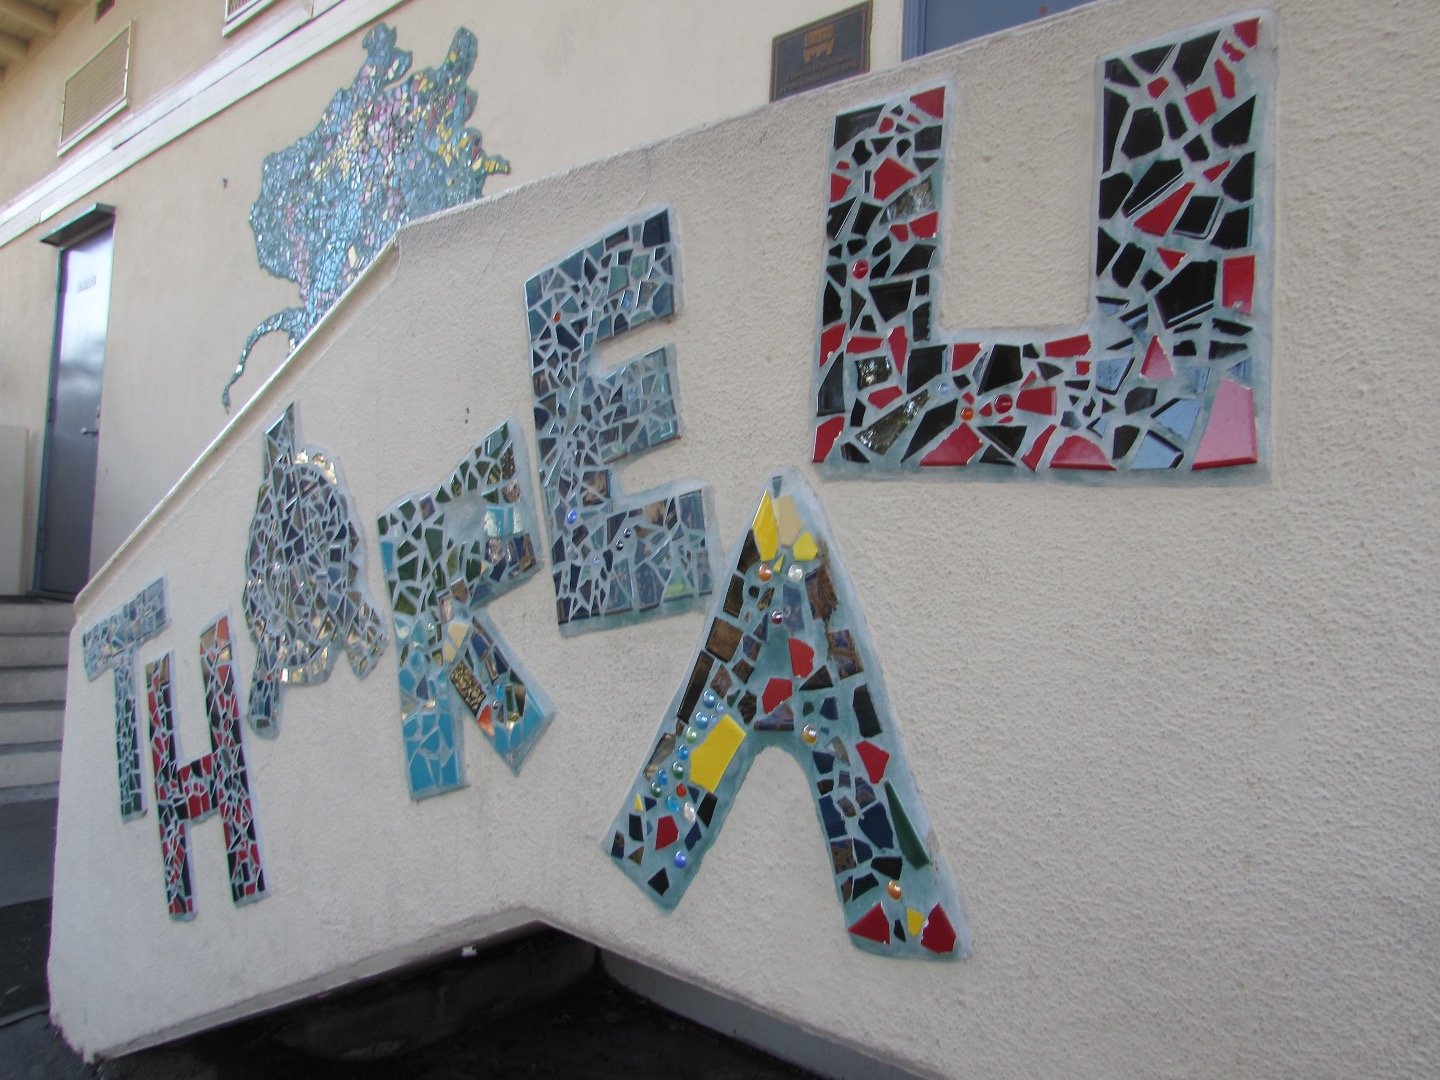 A picture of a mosaic lettering spelling